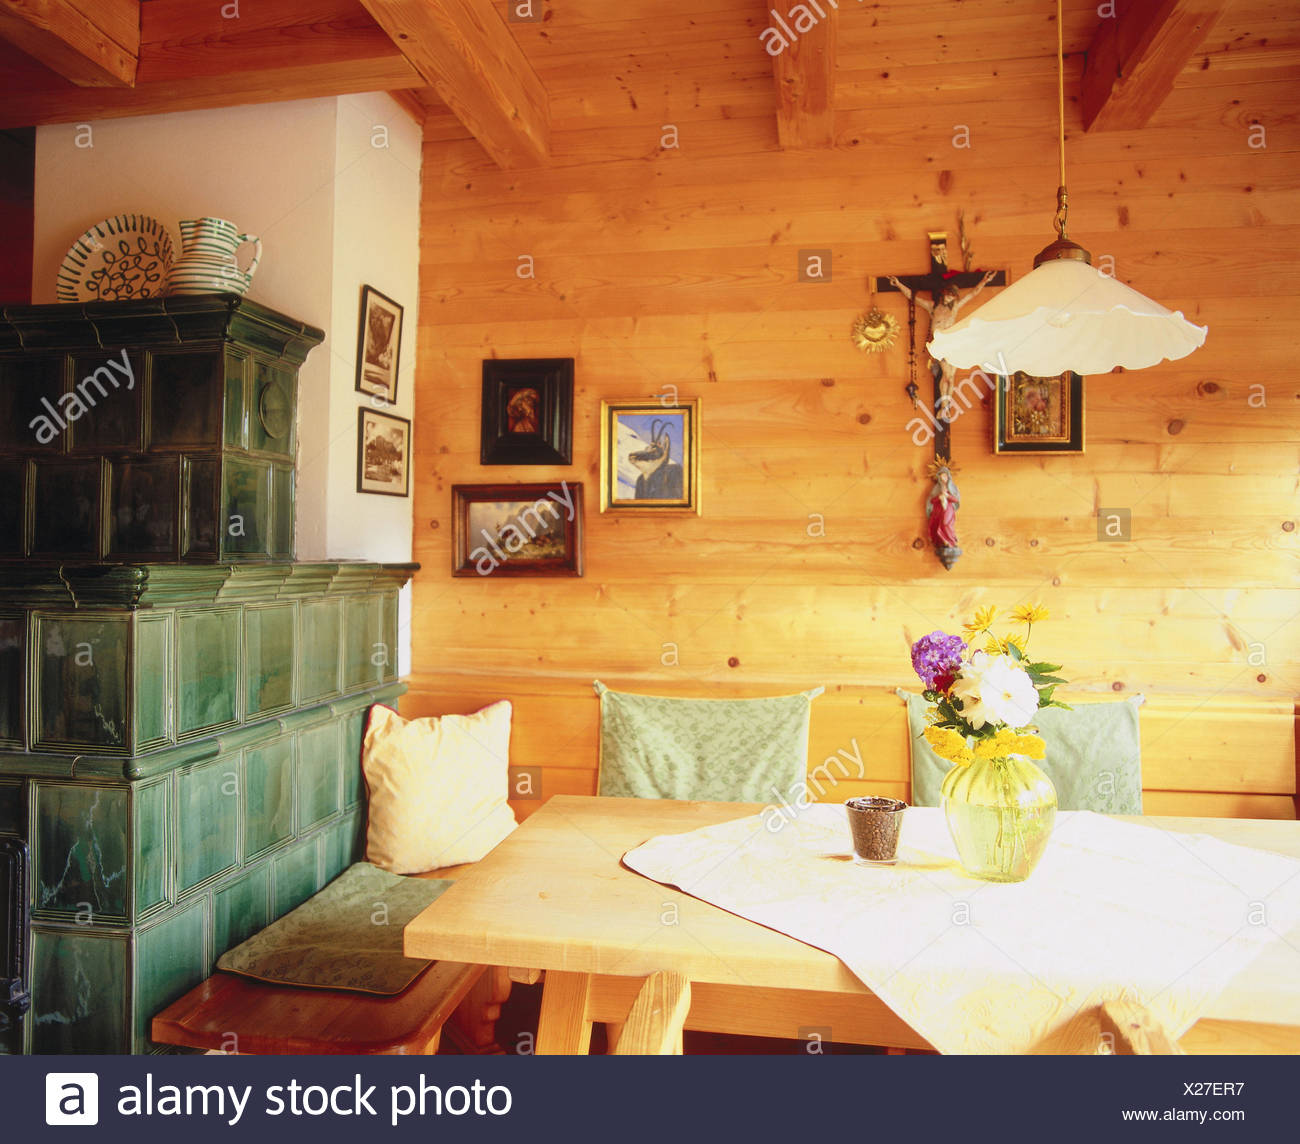 Fantastic Rustic Walls And Ceilings Picture Collection - The Wall ...